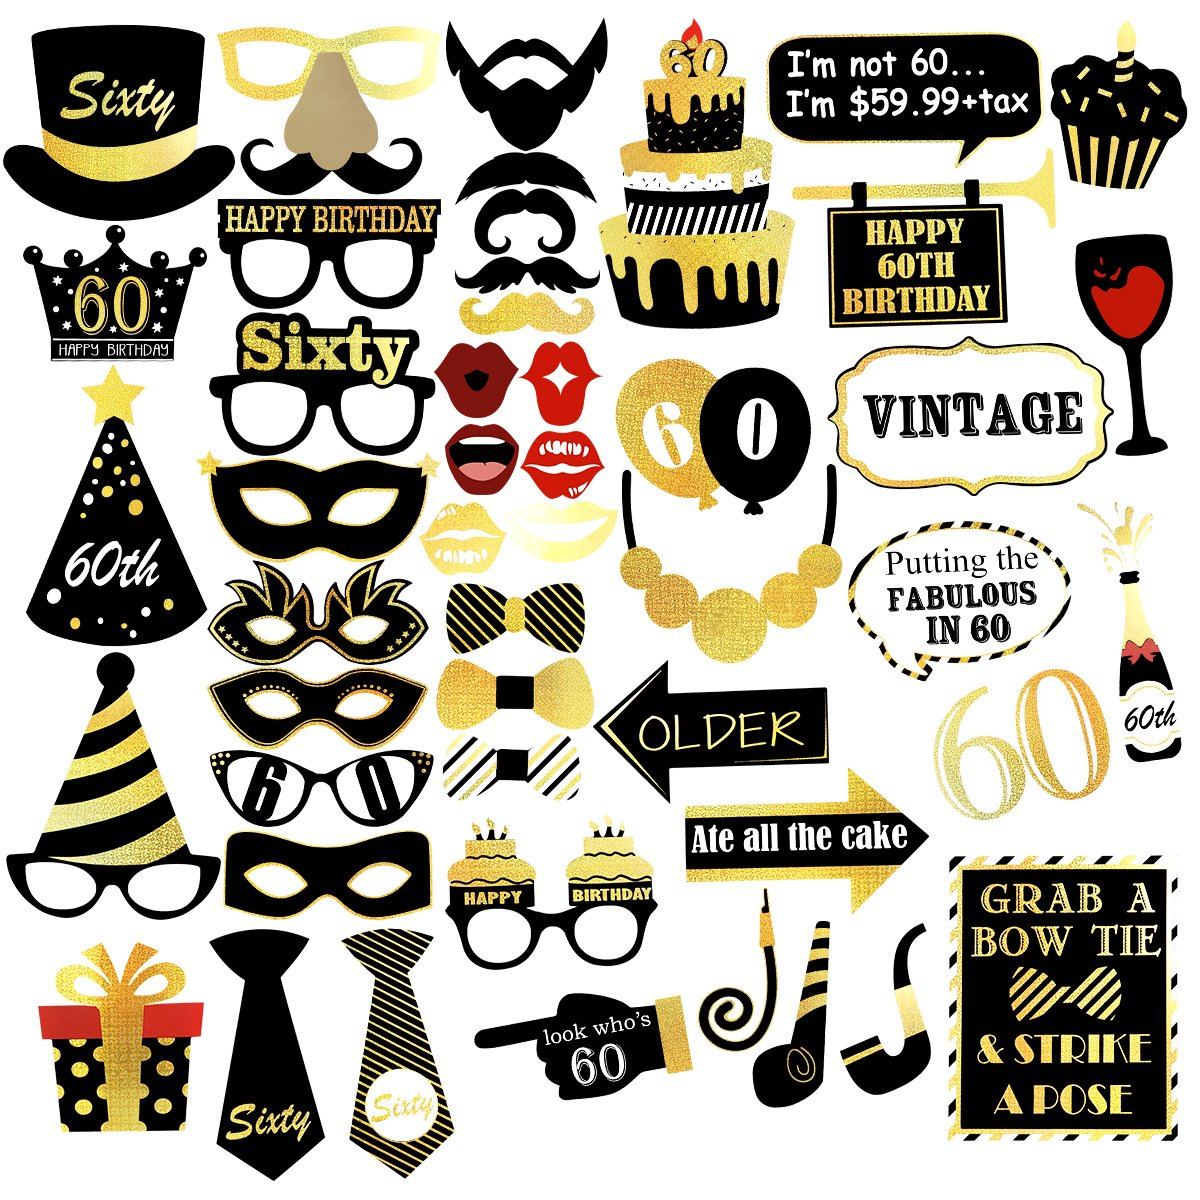 Unomor 60th Birthday Photo Booth Props for Gold and Black Birthday Party Supplies, Decorations and Favors - 48 pcs by Unomor